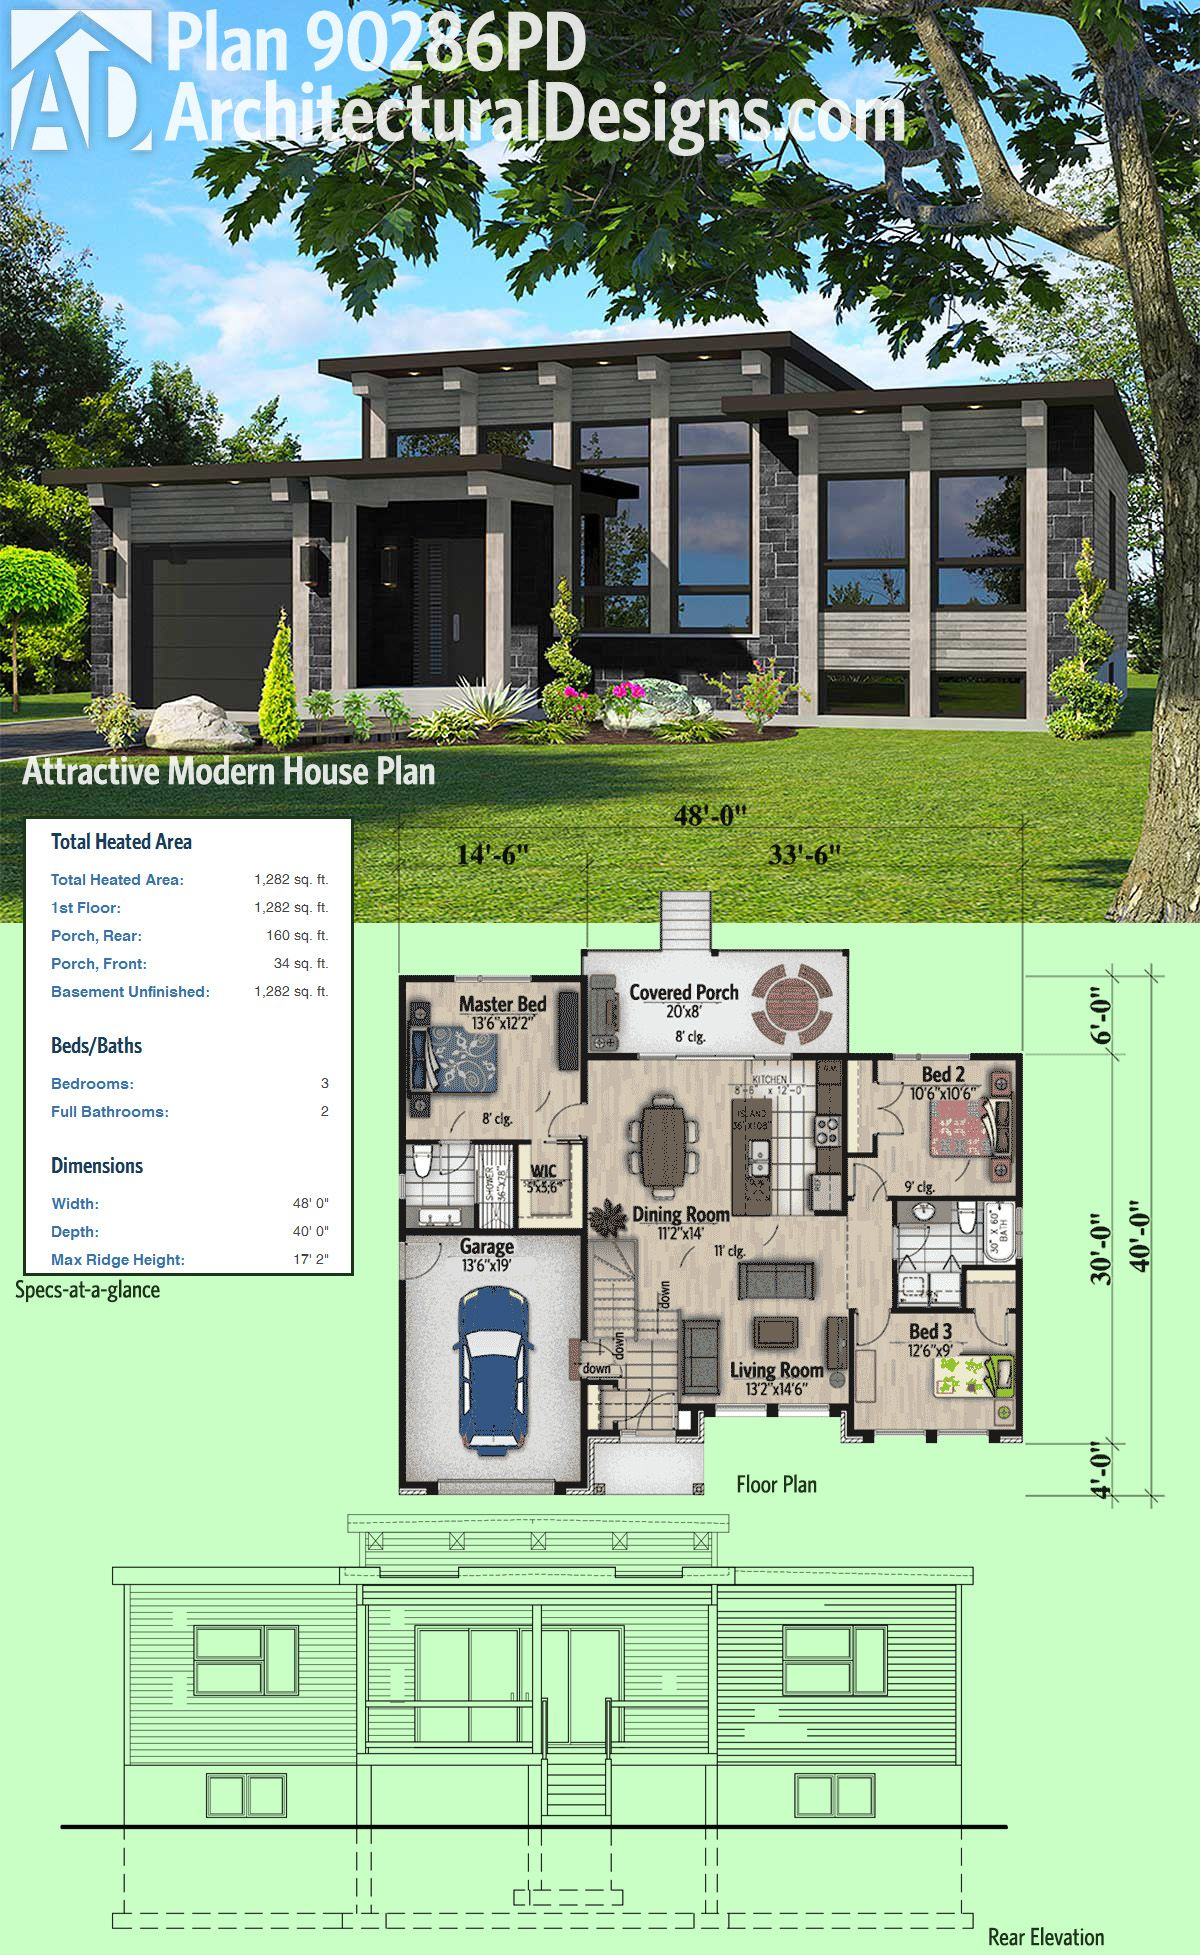 plan 90286pd attractive modern house plan house plans on small modern home plans design for financial savings id=59548